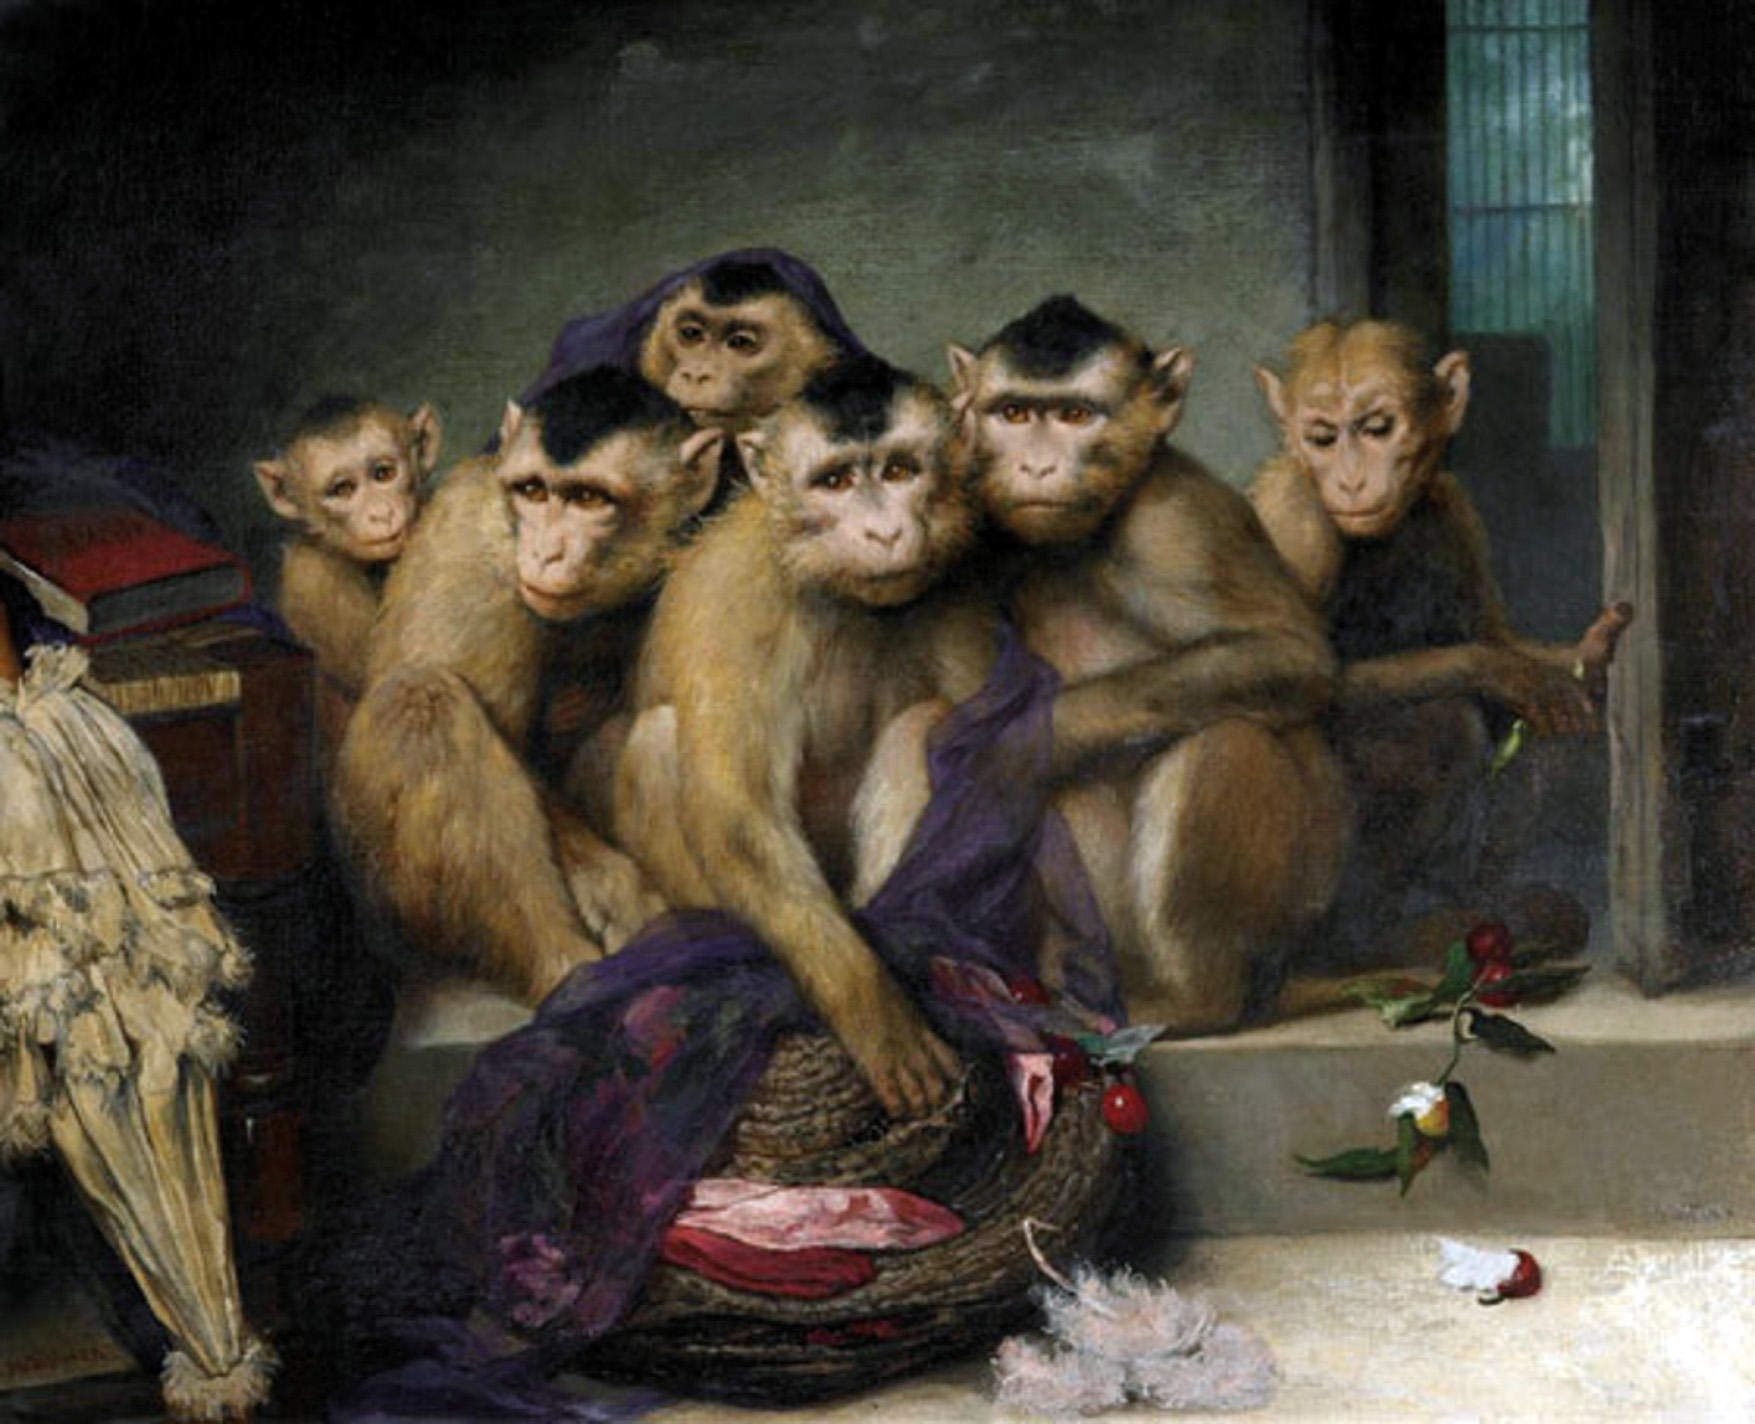 The man who lived with monkeys – and what he learned from them